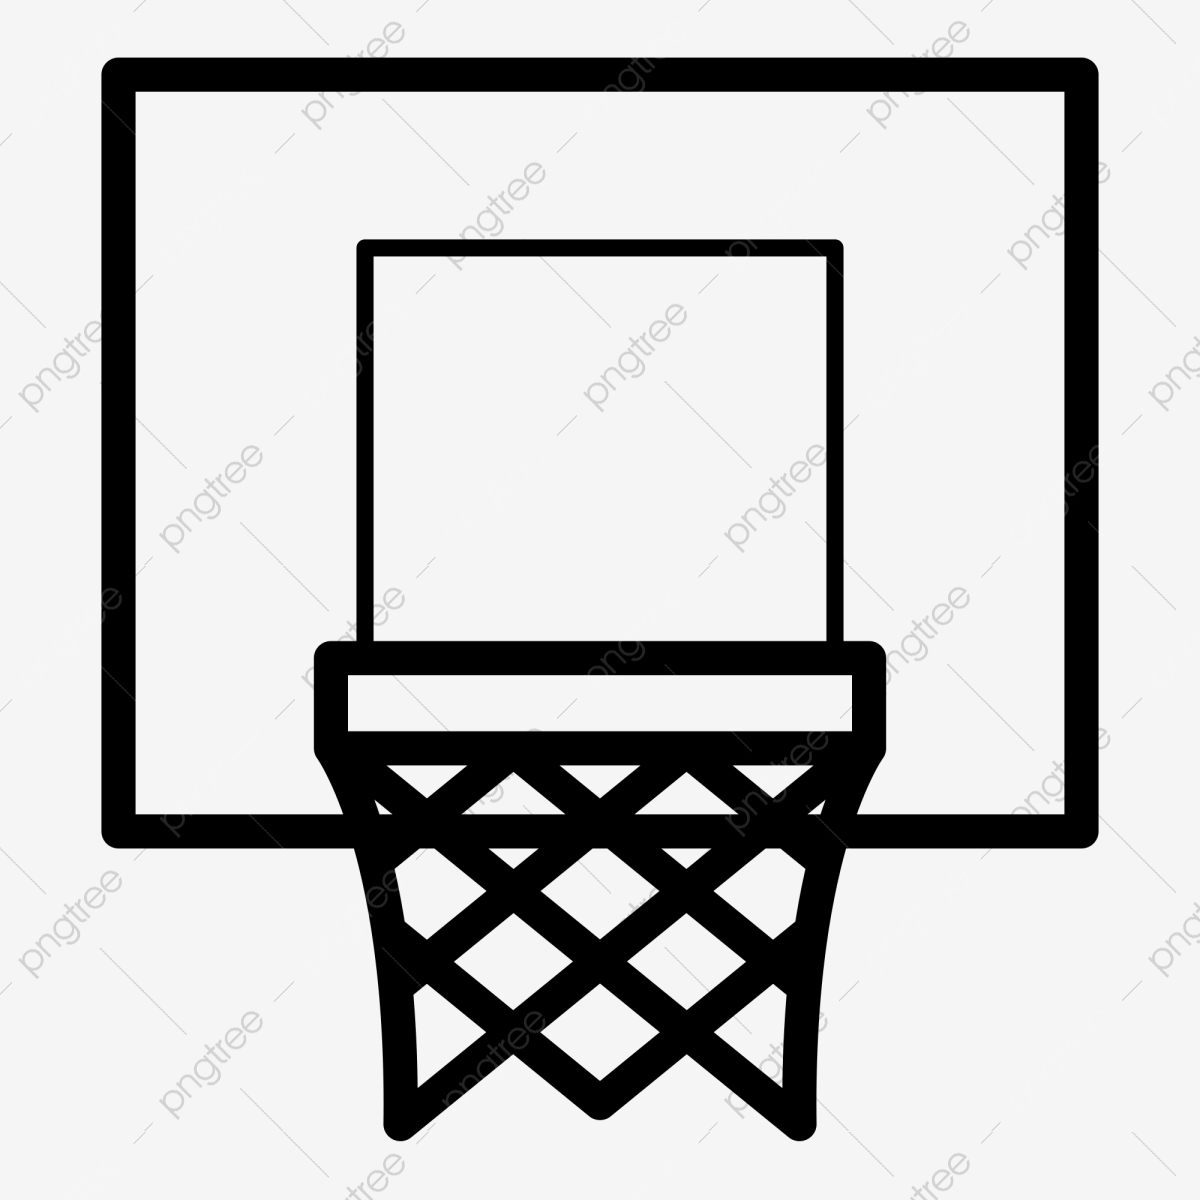 Action Vector Illustration Of Basketball Going Into A Hoop. Backboard,..  Royalty Free Cliparts, Vectors, And Stock Illustration. Image 101036219.